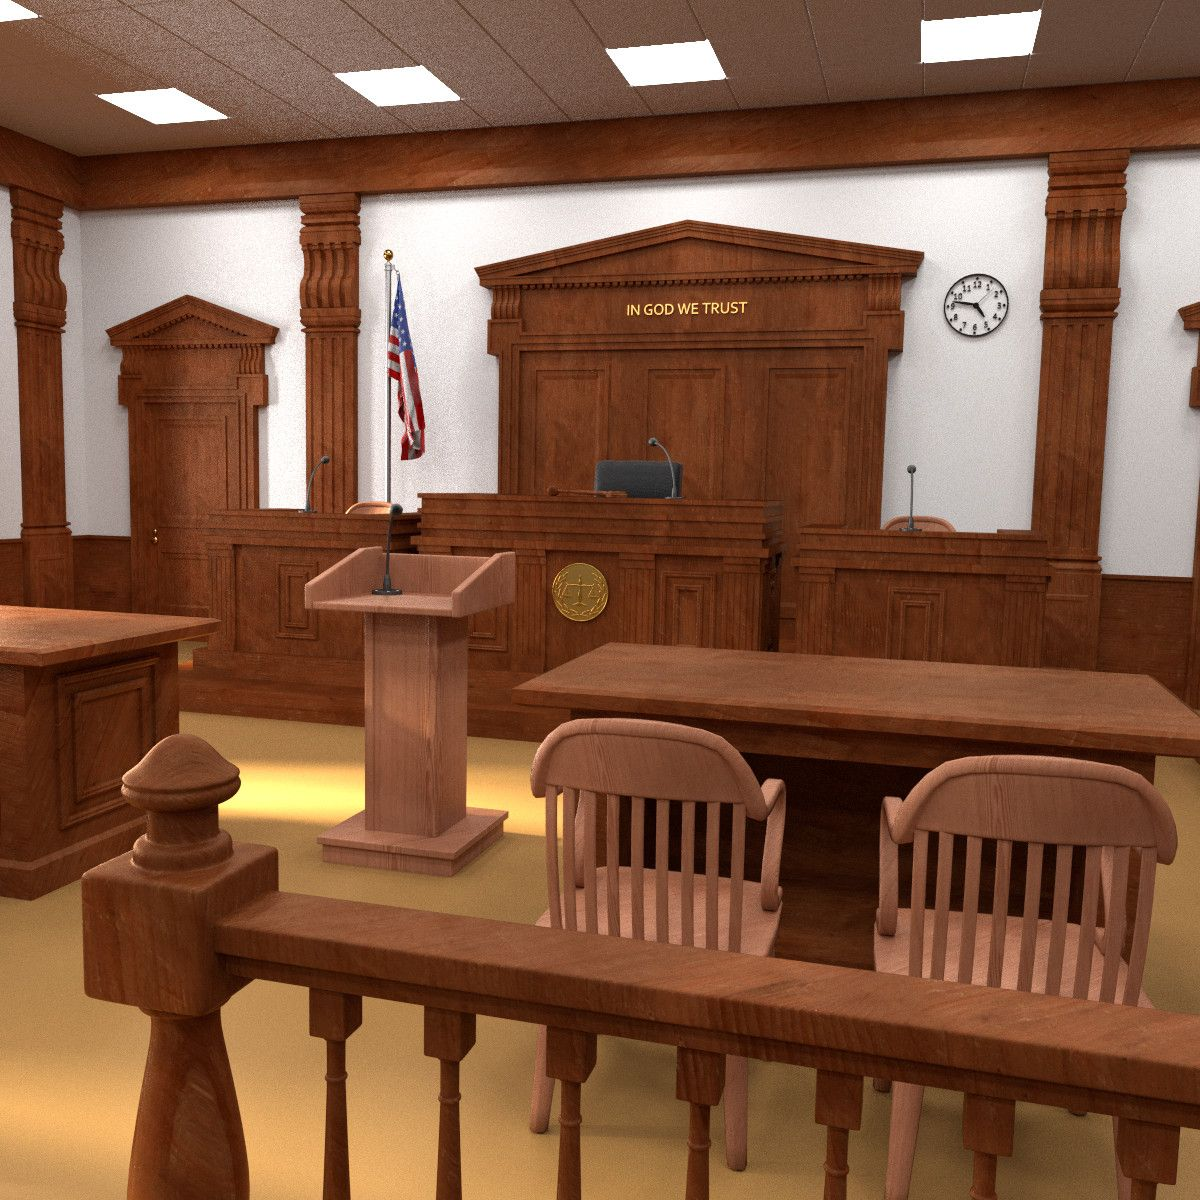 3d court room courtroom model (With images) Dating sites